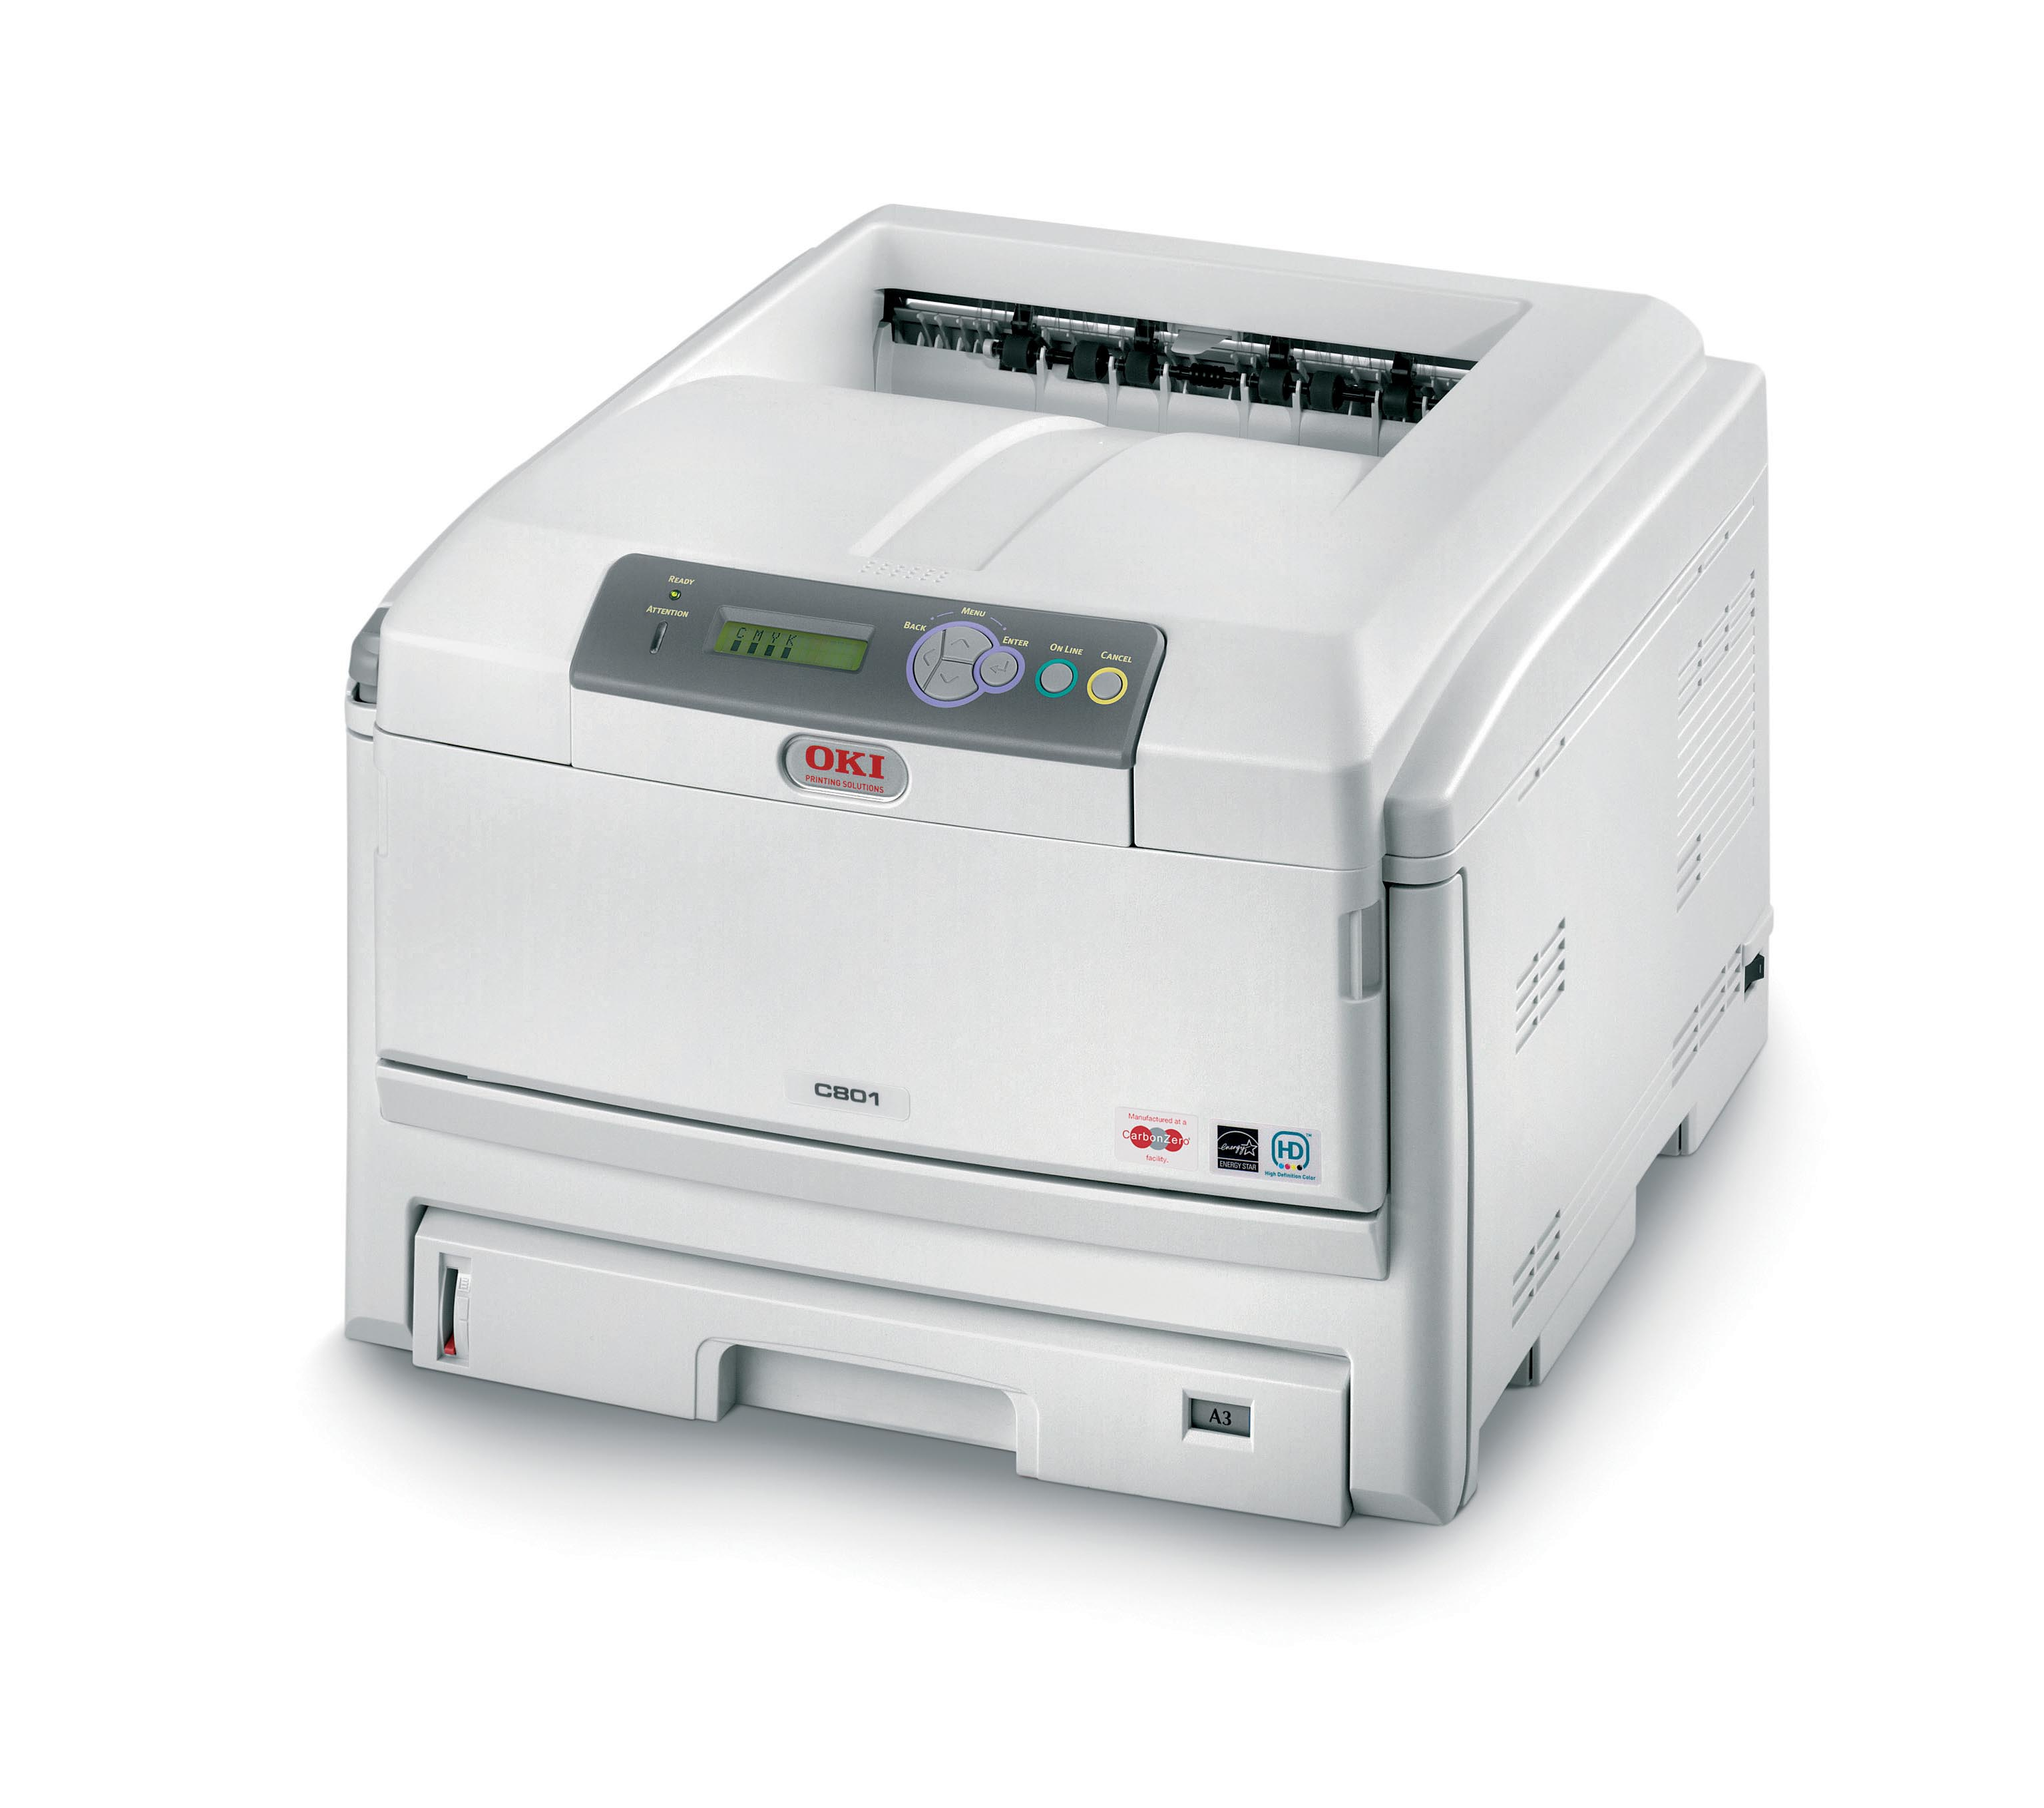 Oki C801n Printer 01288801 - Refurbished